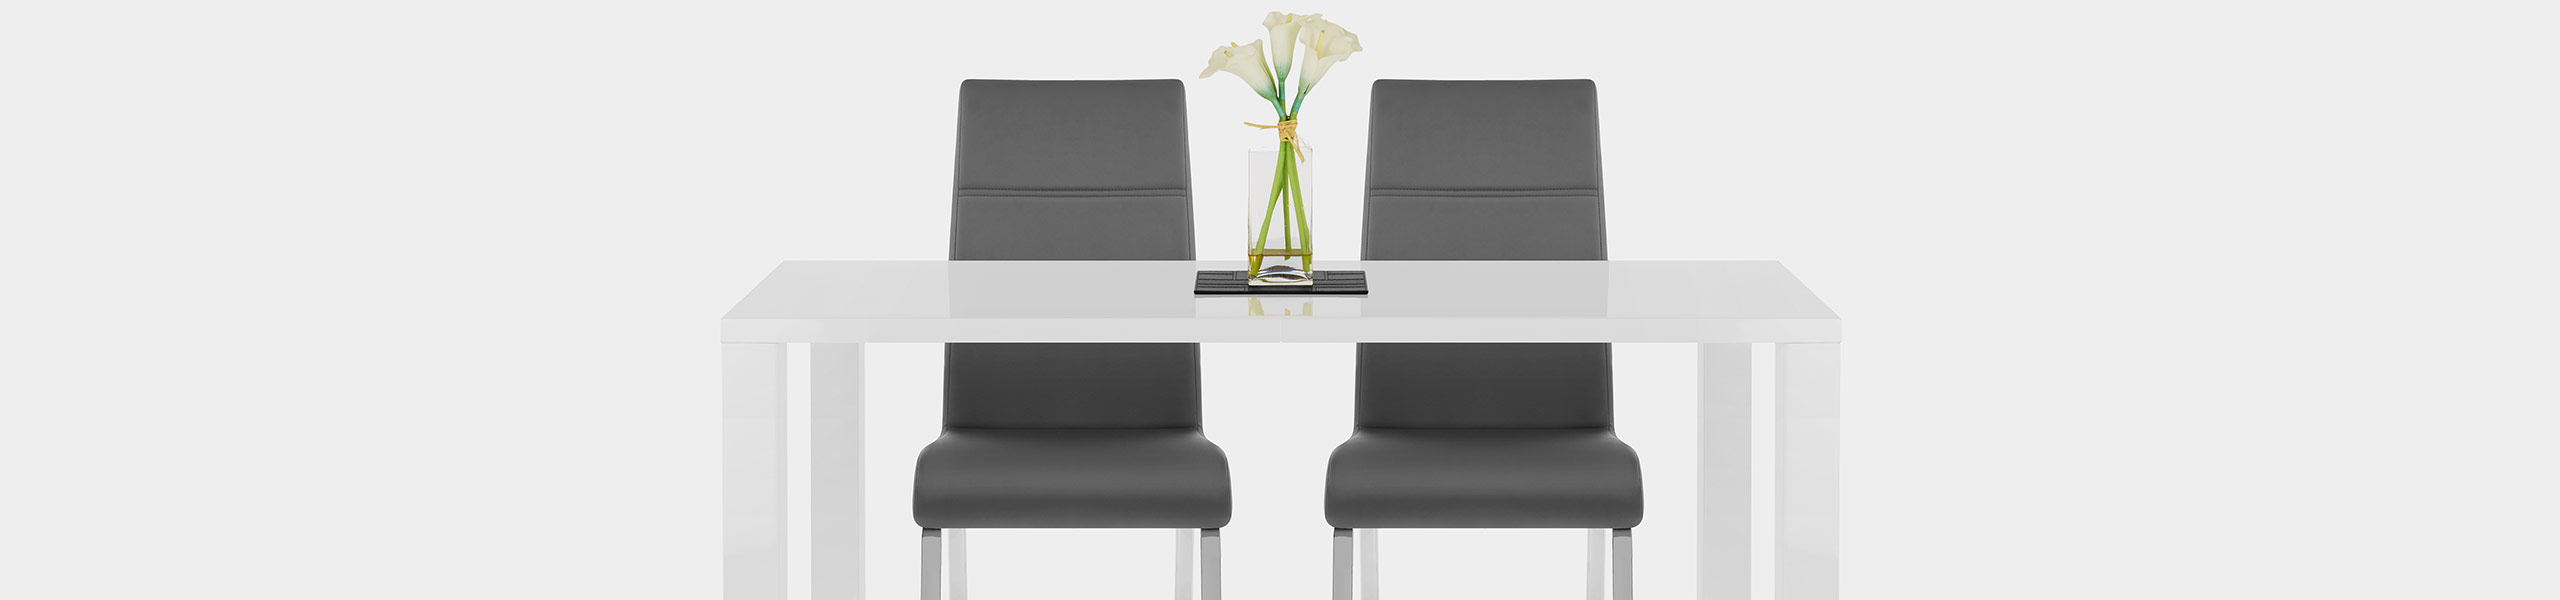 Sherman Dining Chair Grey Video Banner